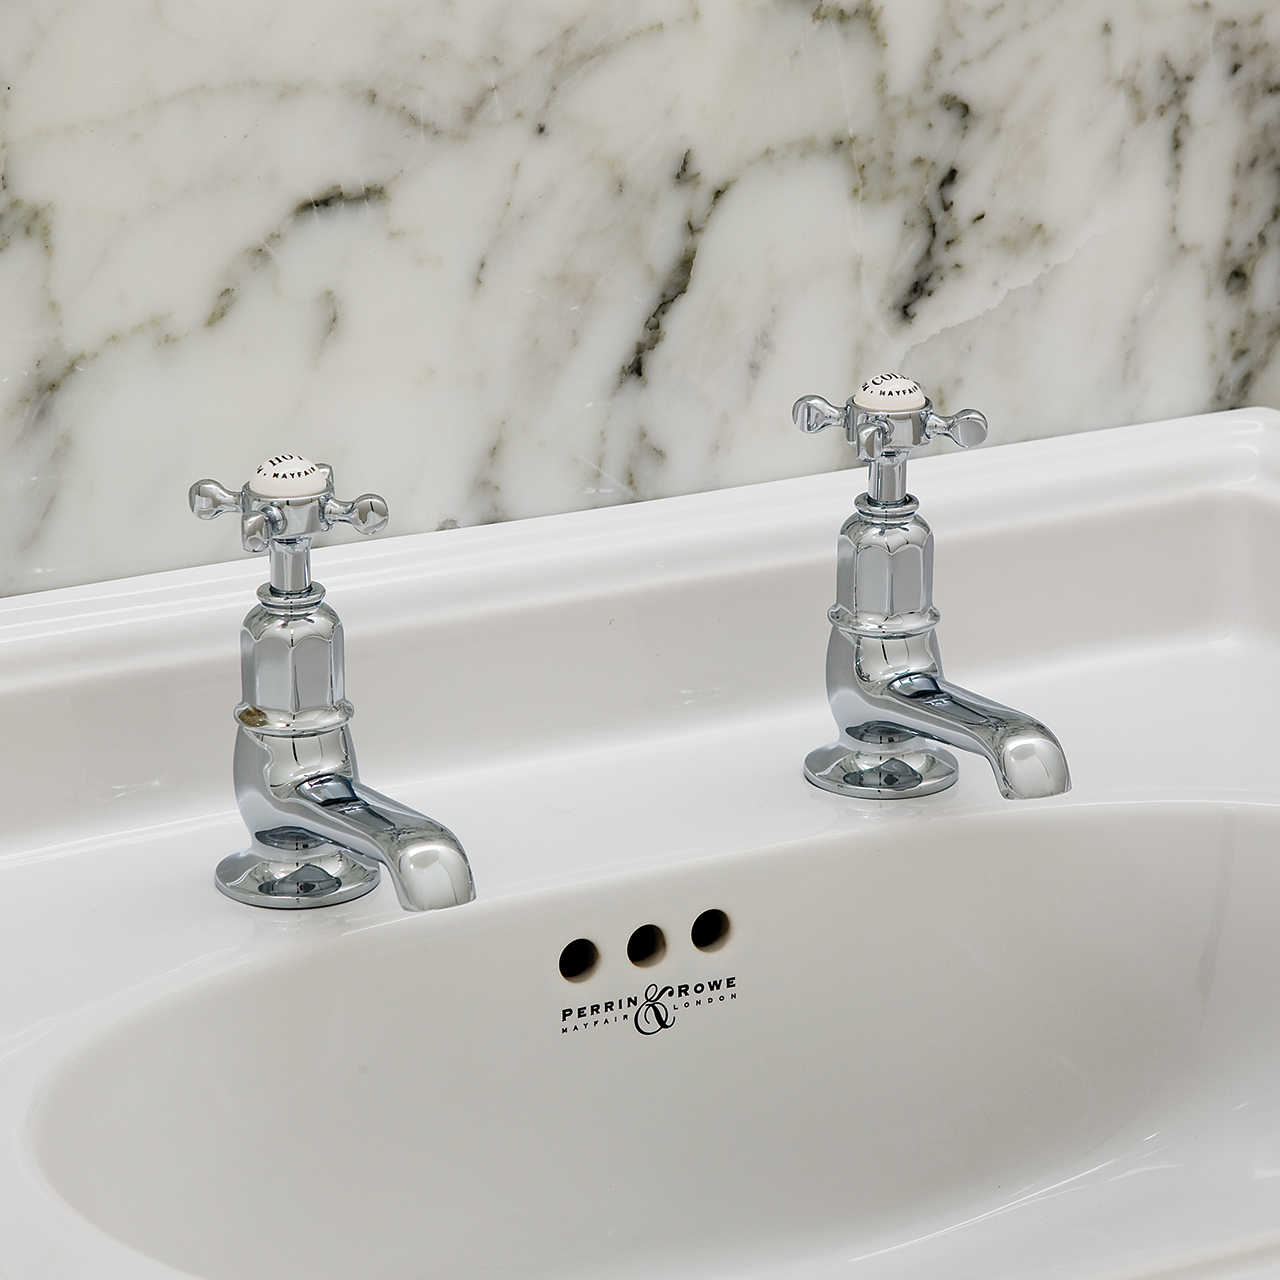 Perrin-and-Rowe Traditional basin pillar taps with crosshead handles -3476-.jpg